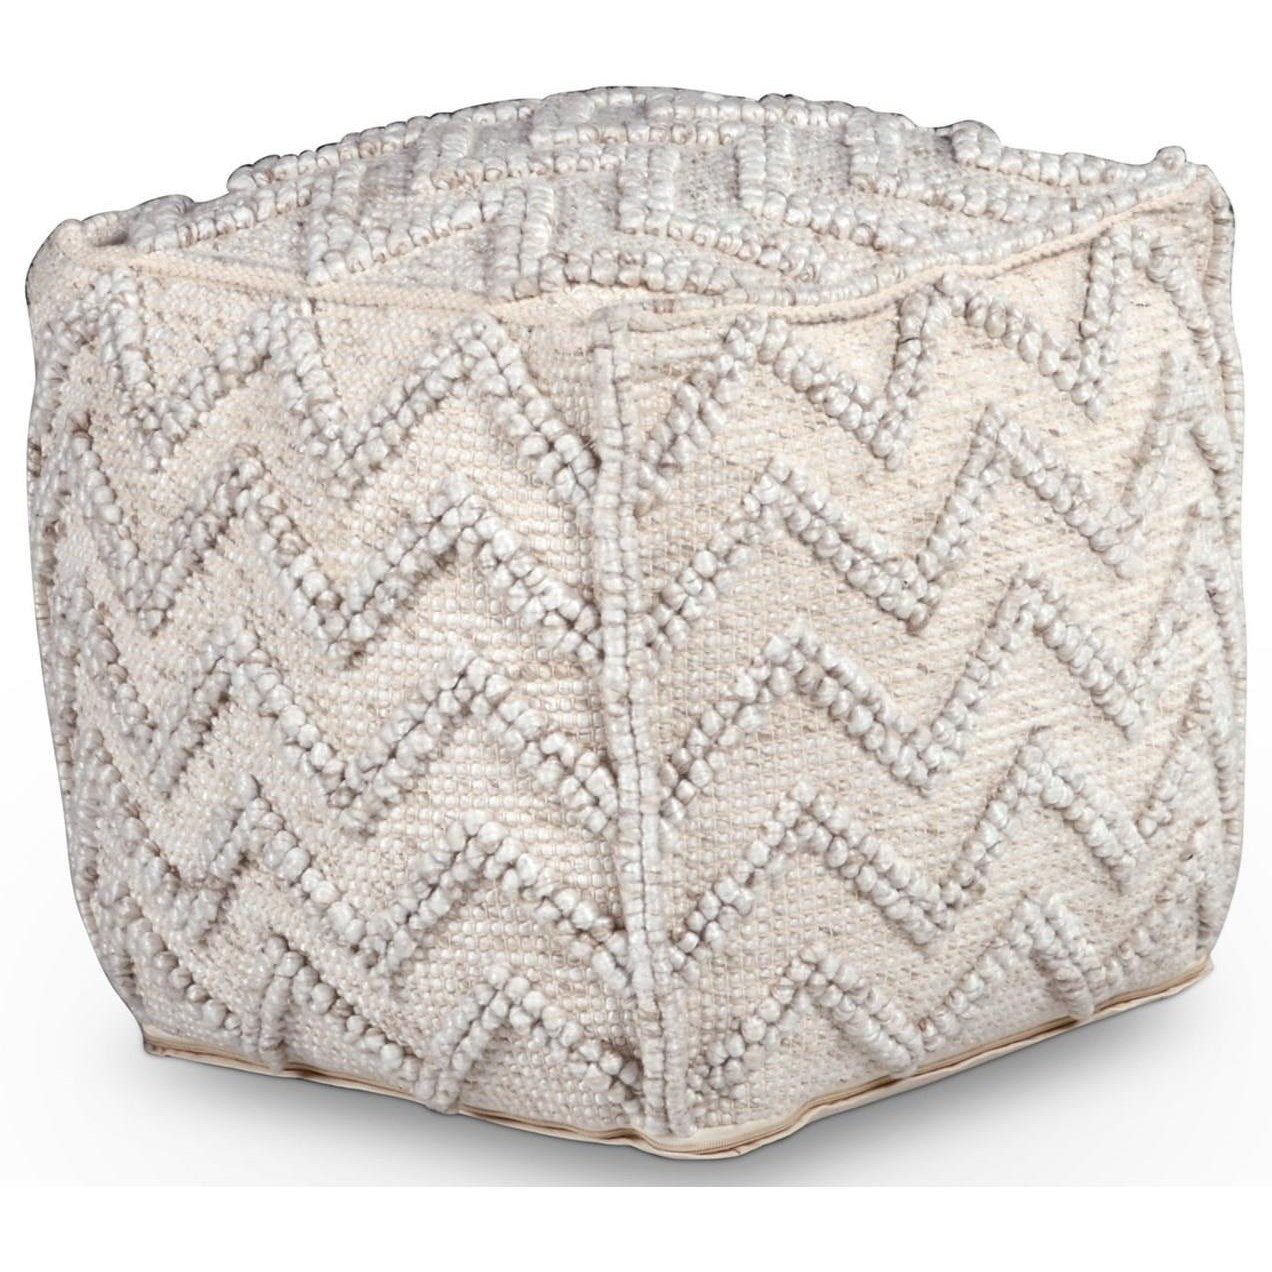 Kenzari Handwoven Pouf by Star at EFO Furniture Outlet